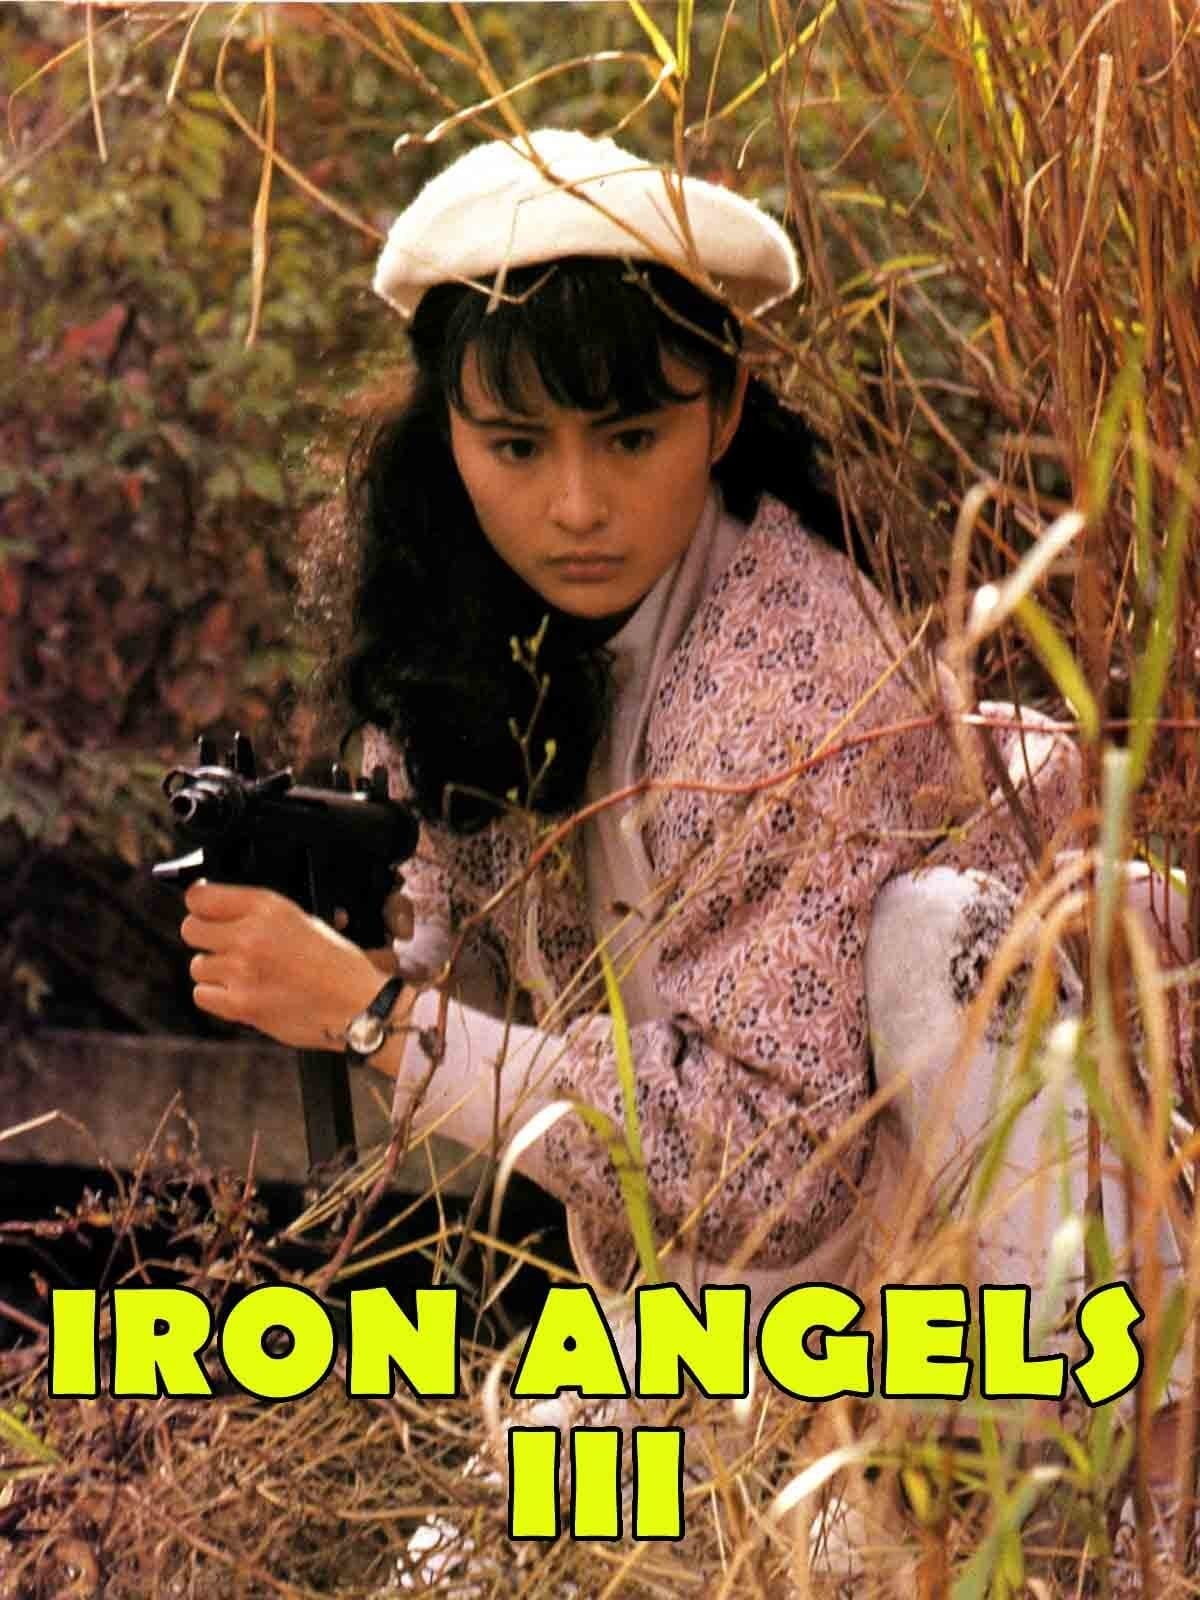 Angel III (Iron Angels 3) (Tin si hang dung III- Moh lui mut yat) เชือด เชือดนิ่มนิ่ม 3 (1989)